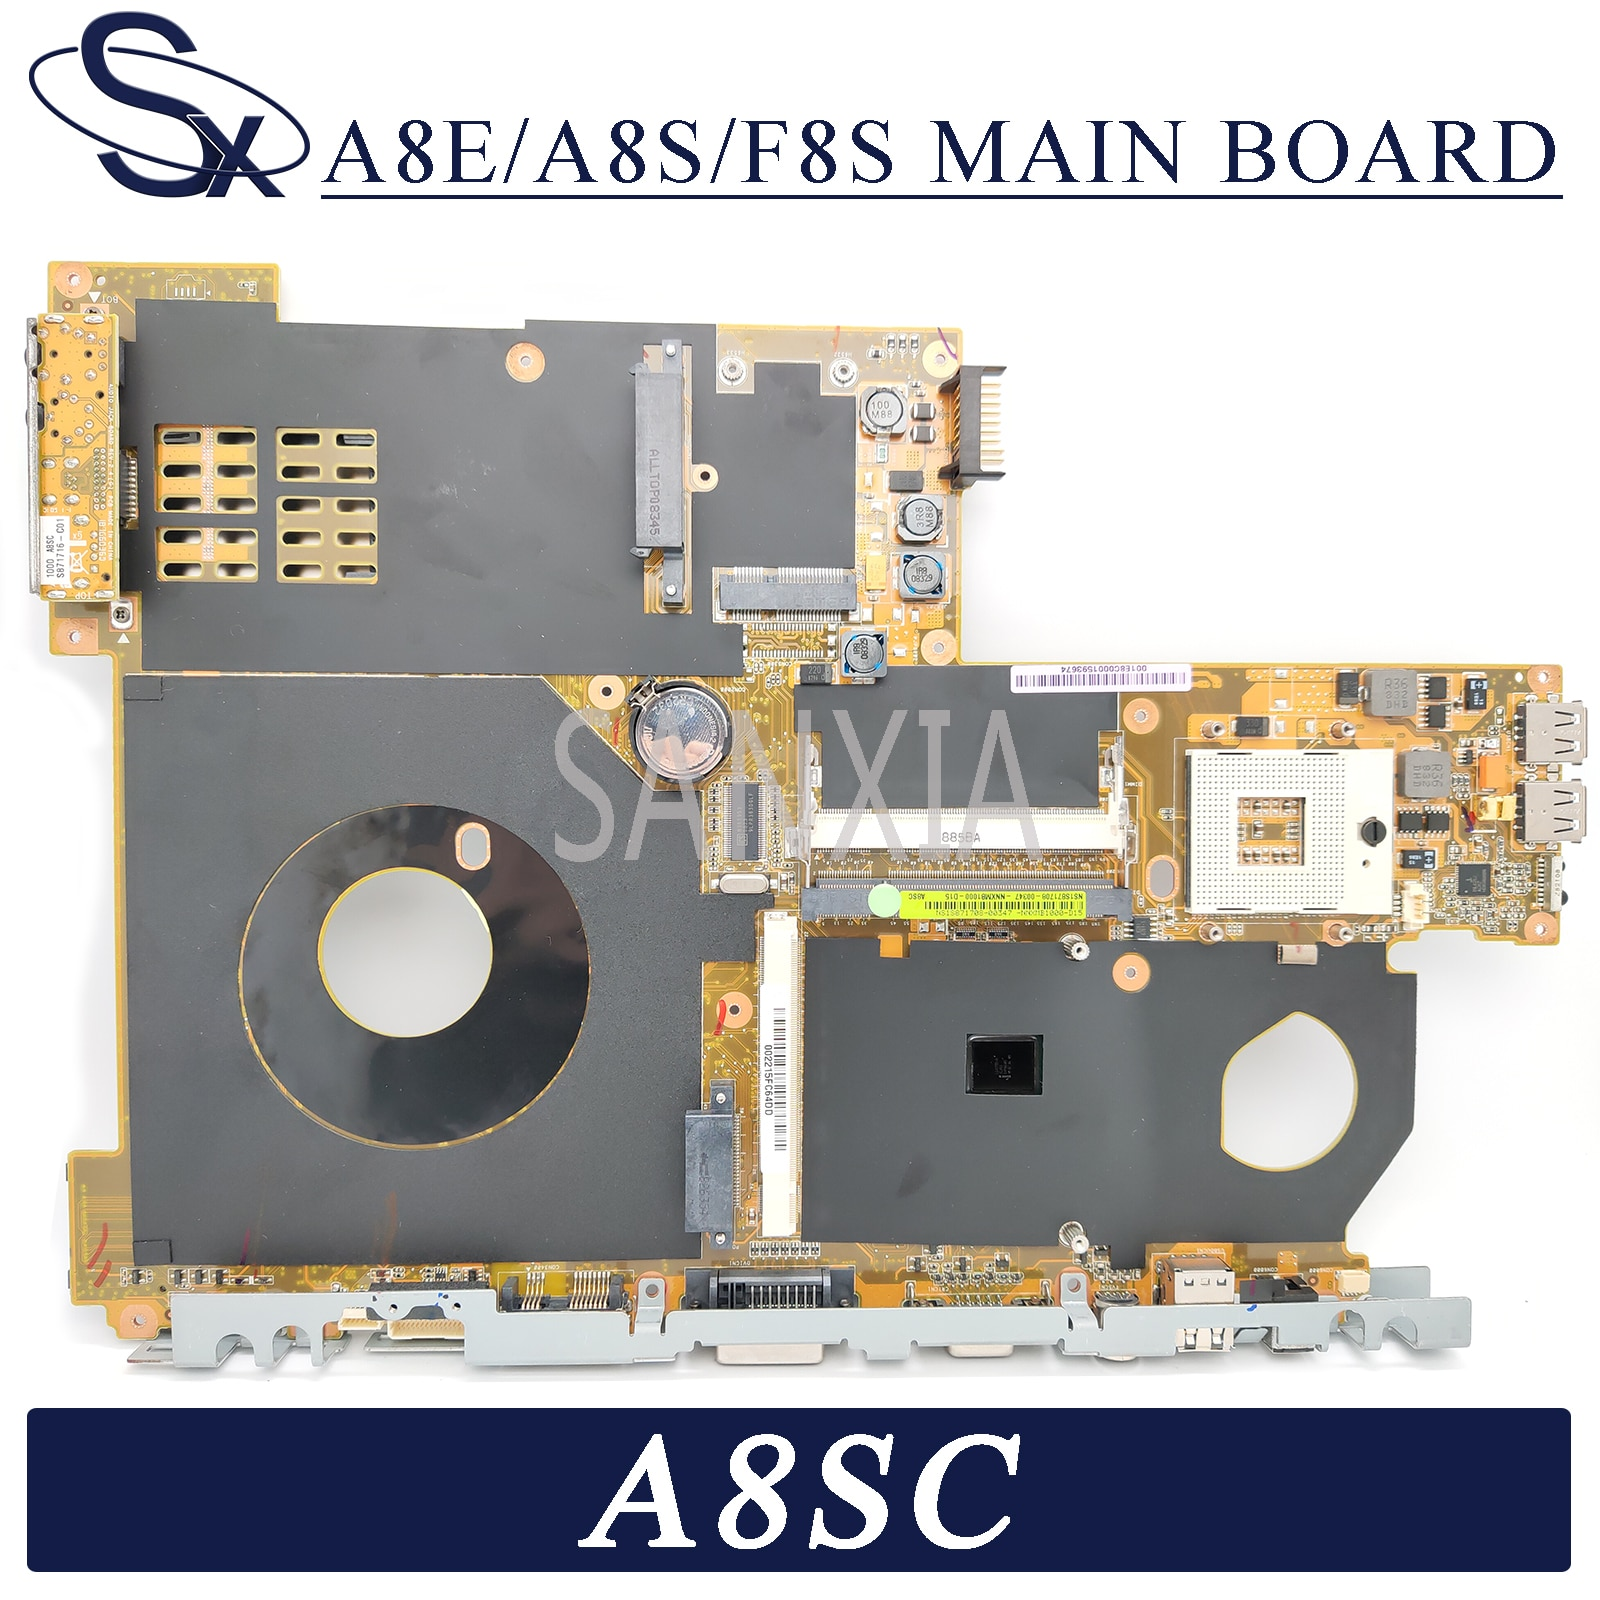 KEFU A8E/A8S/F8S Laptop motherboard for ASUS A8SC original motherboard